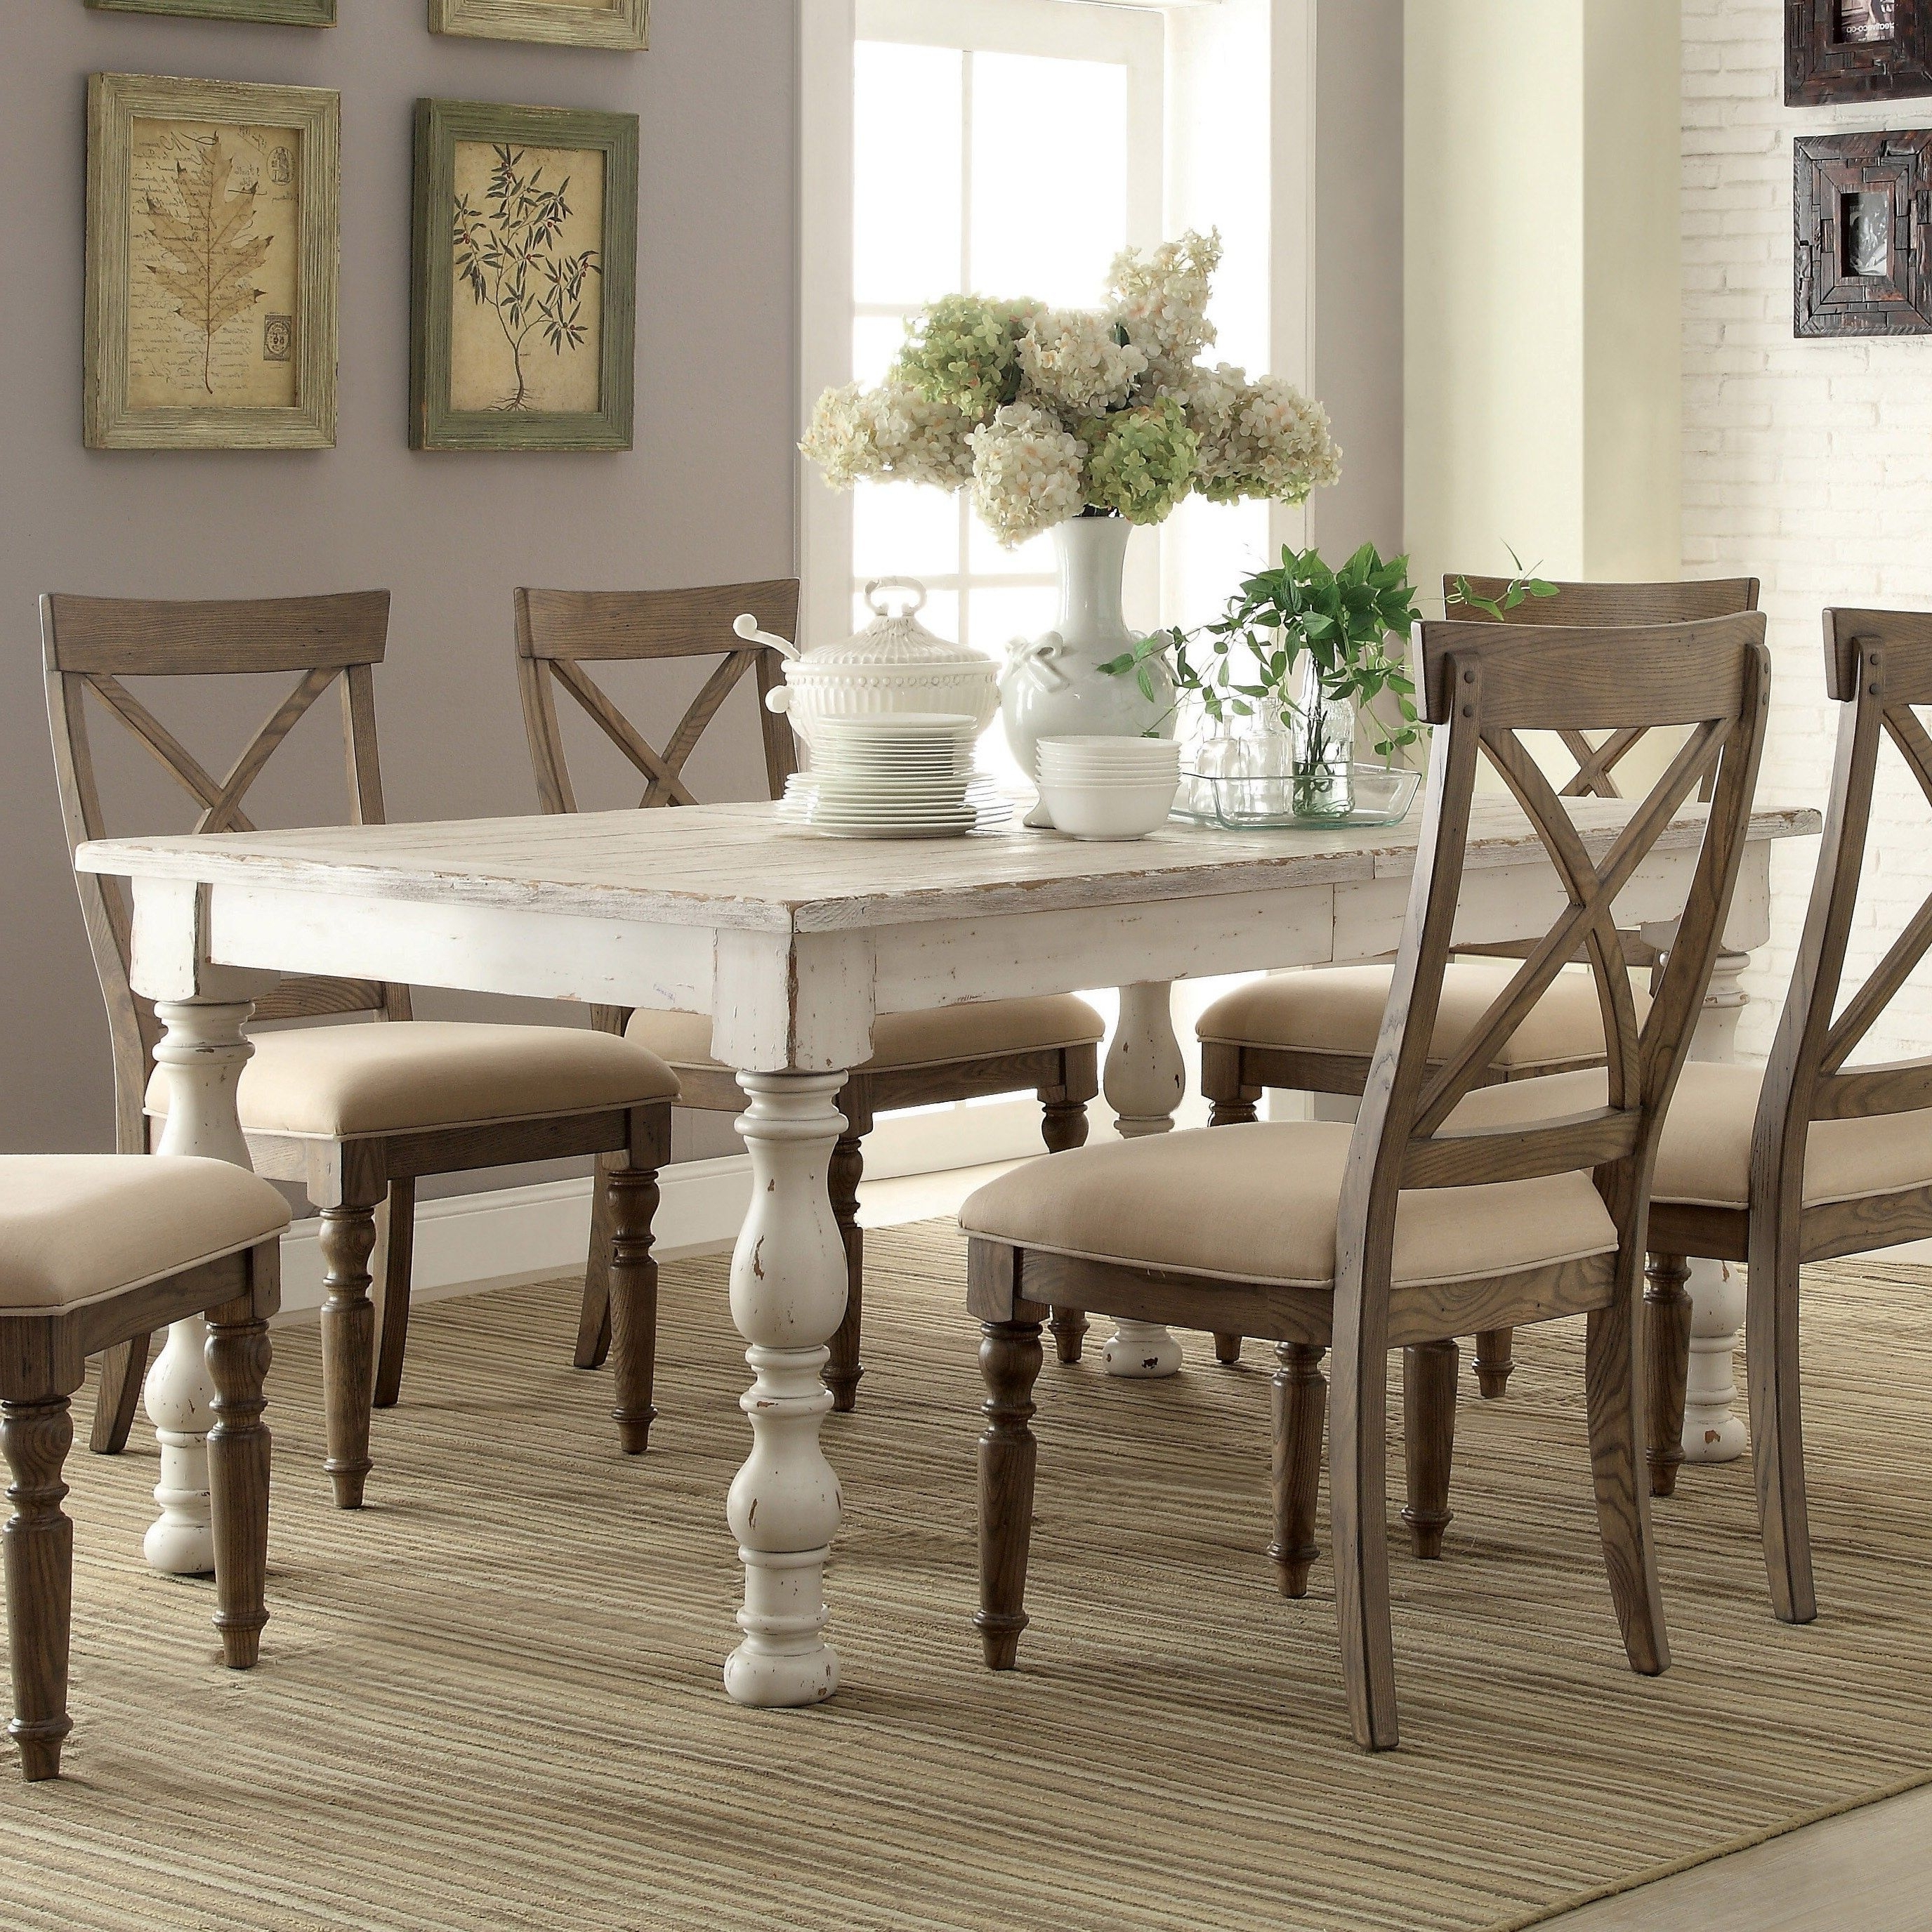 Aberdeen Wood Rectangular Dining Table Only In Weathered Worn White Throughout Most Recent Laurent 7 Piece Rectangle Dining Sets With Wood And Host Chairs (Gallery 14 of 25)